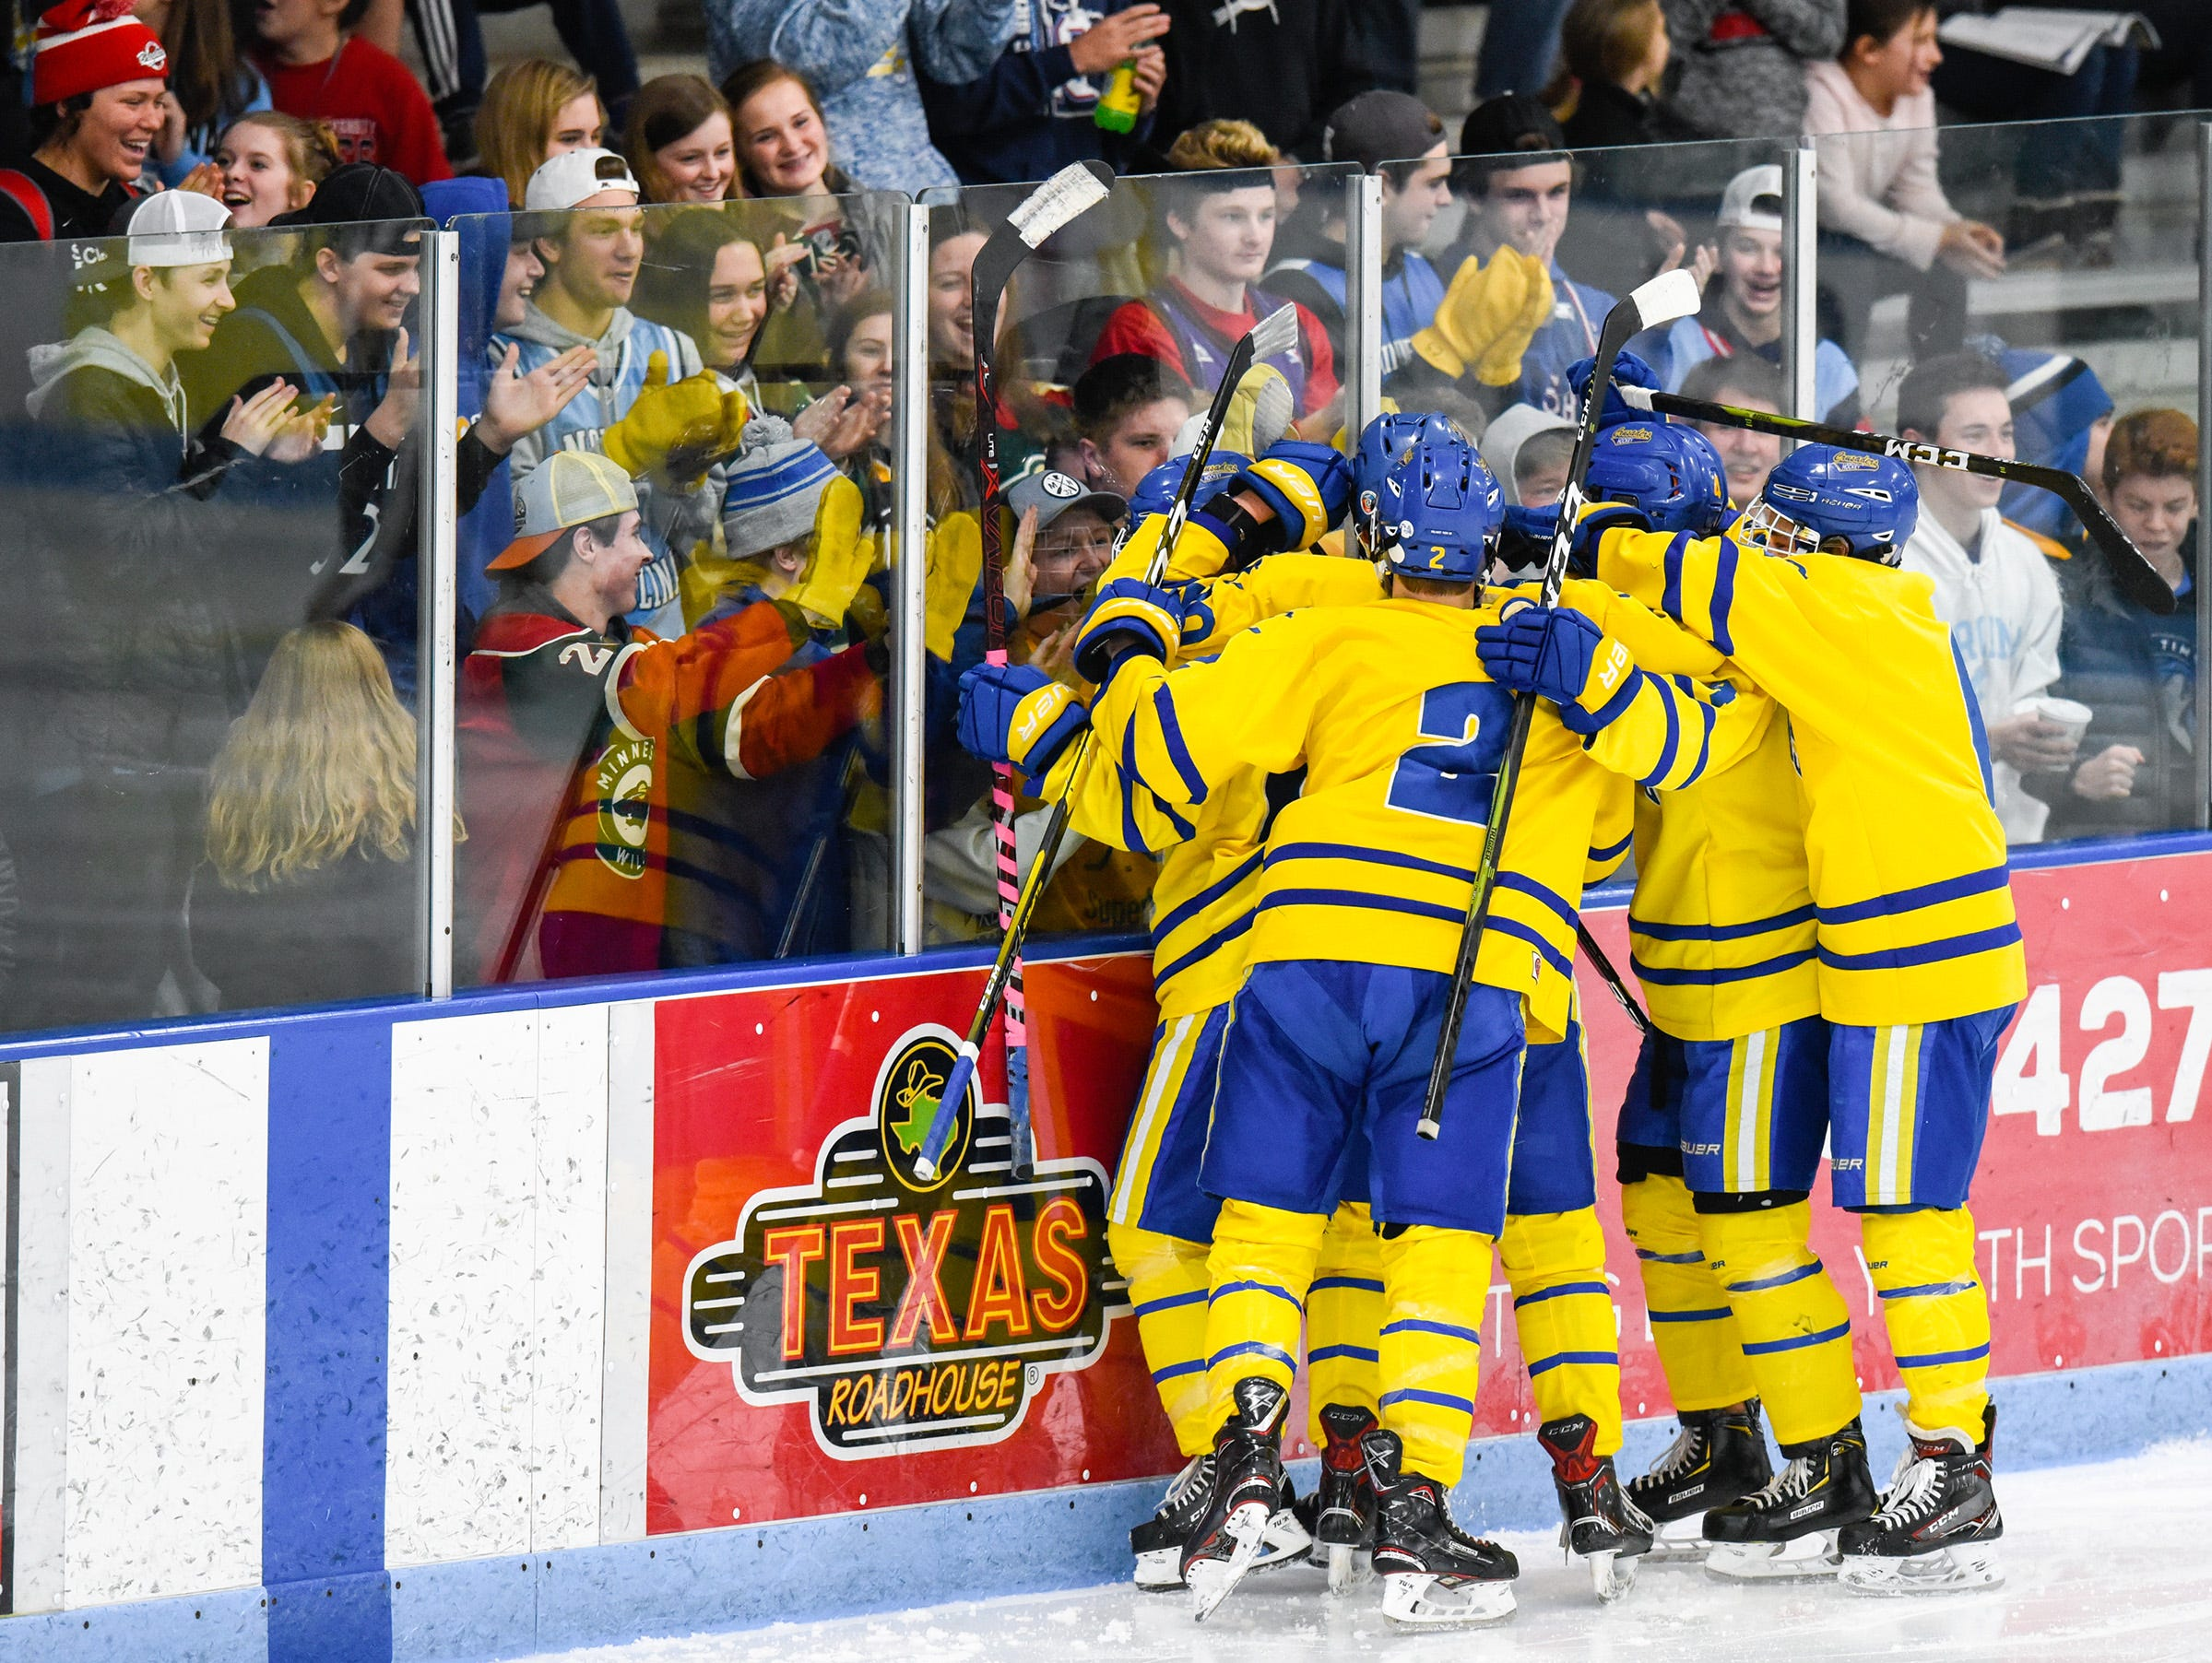 St. Cloud Cathedral players and fans celebrate a goal during the second period Friday, Jan. 4, at the MAC in St. Cloud.